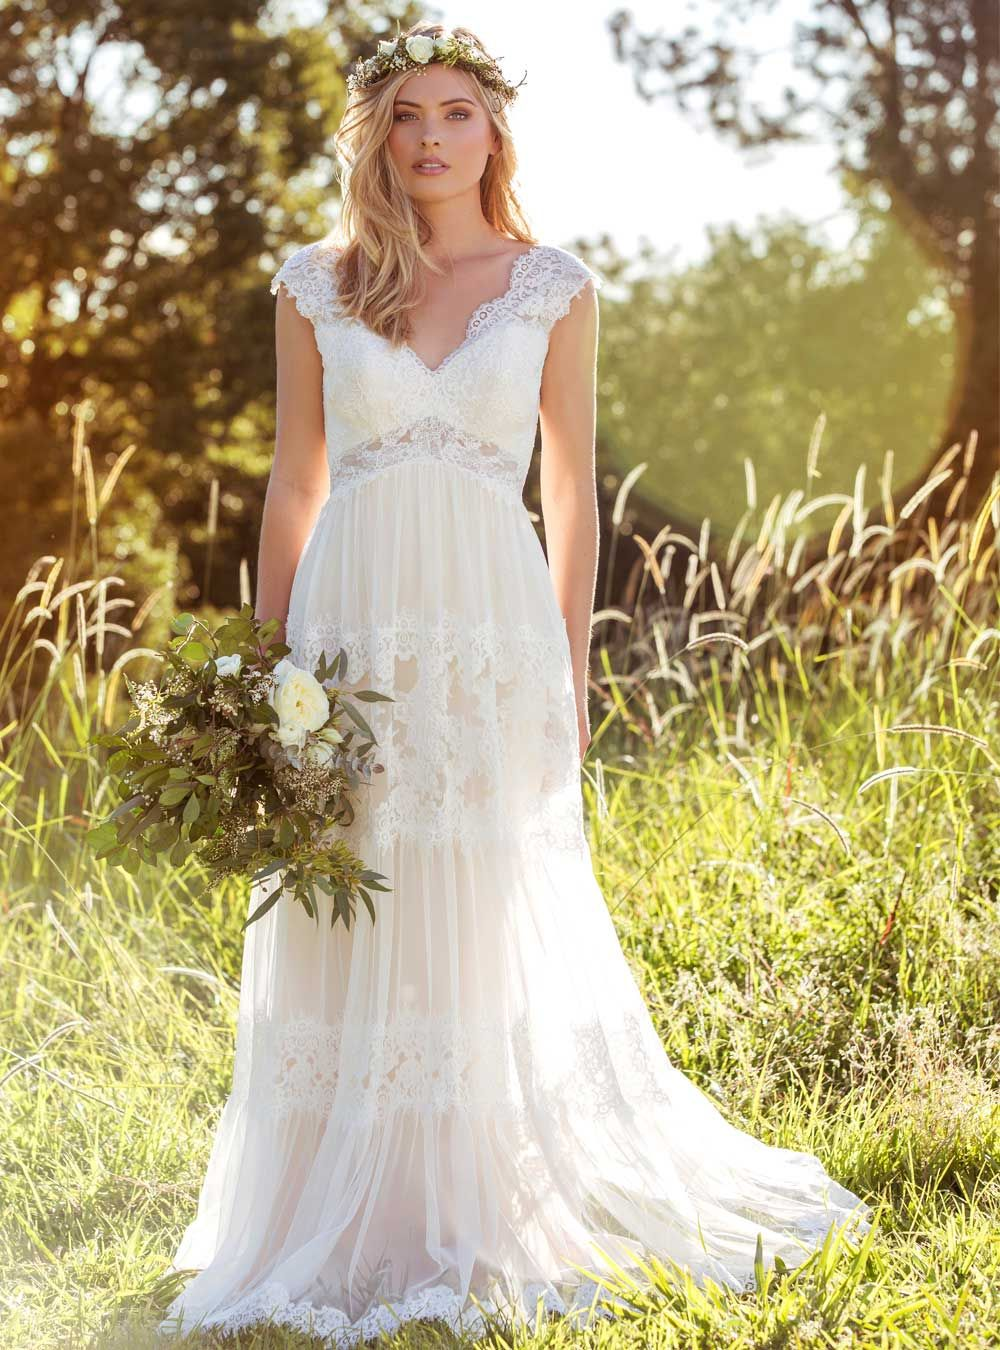 L1037-LUCINDA-MIA-SOLANO-SOFT-BOHEMIAN-LACE-BEACH-WEDDING-DRESS-LUV ...